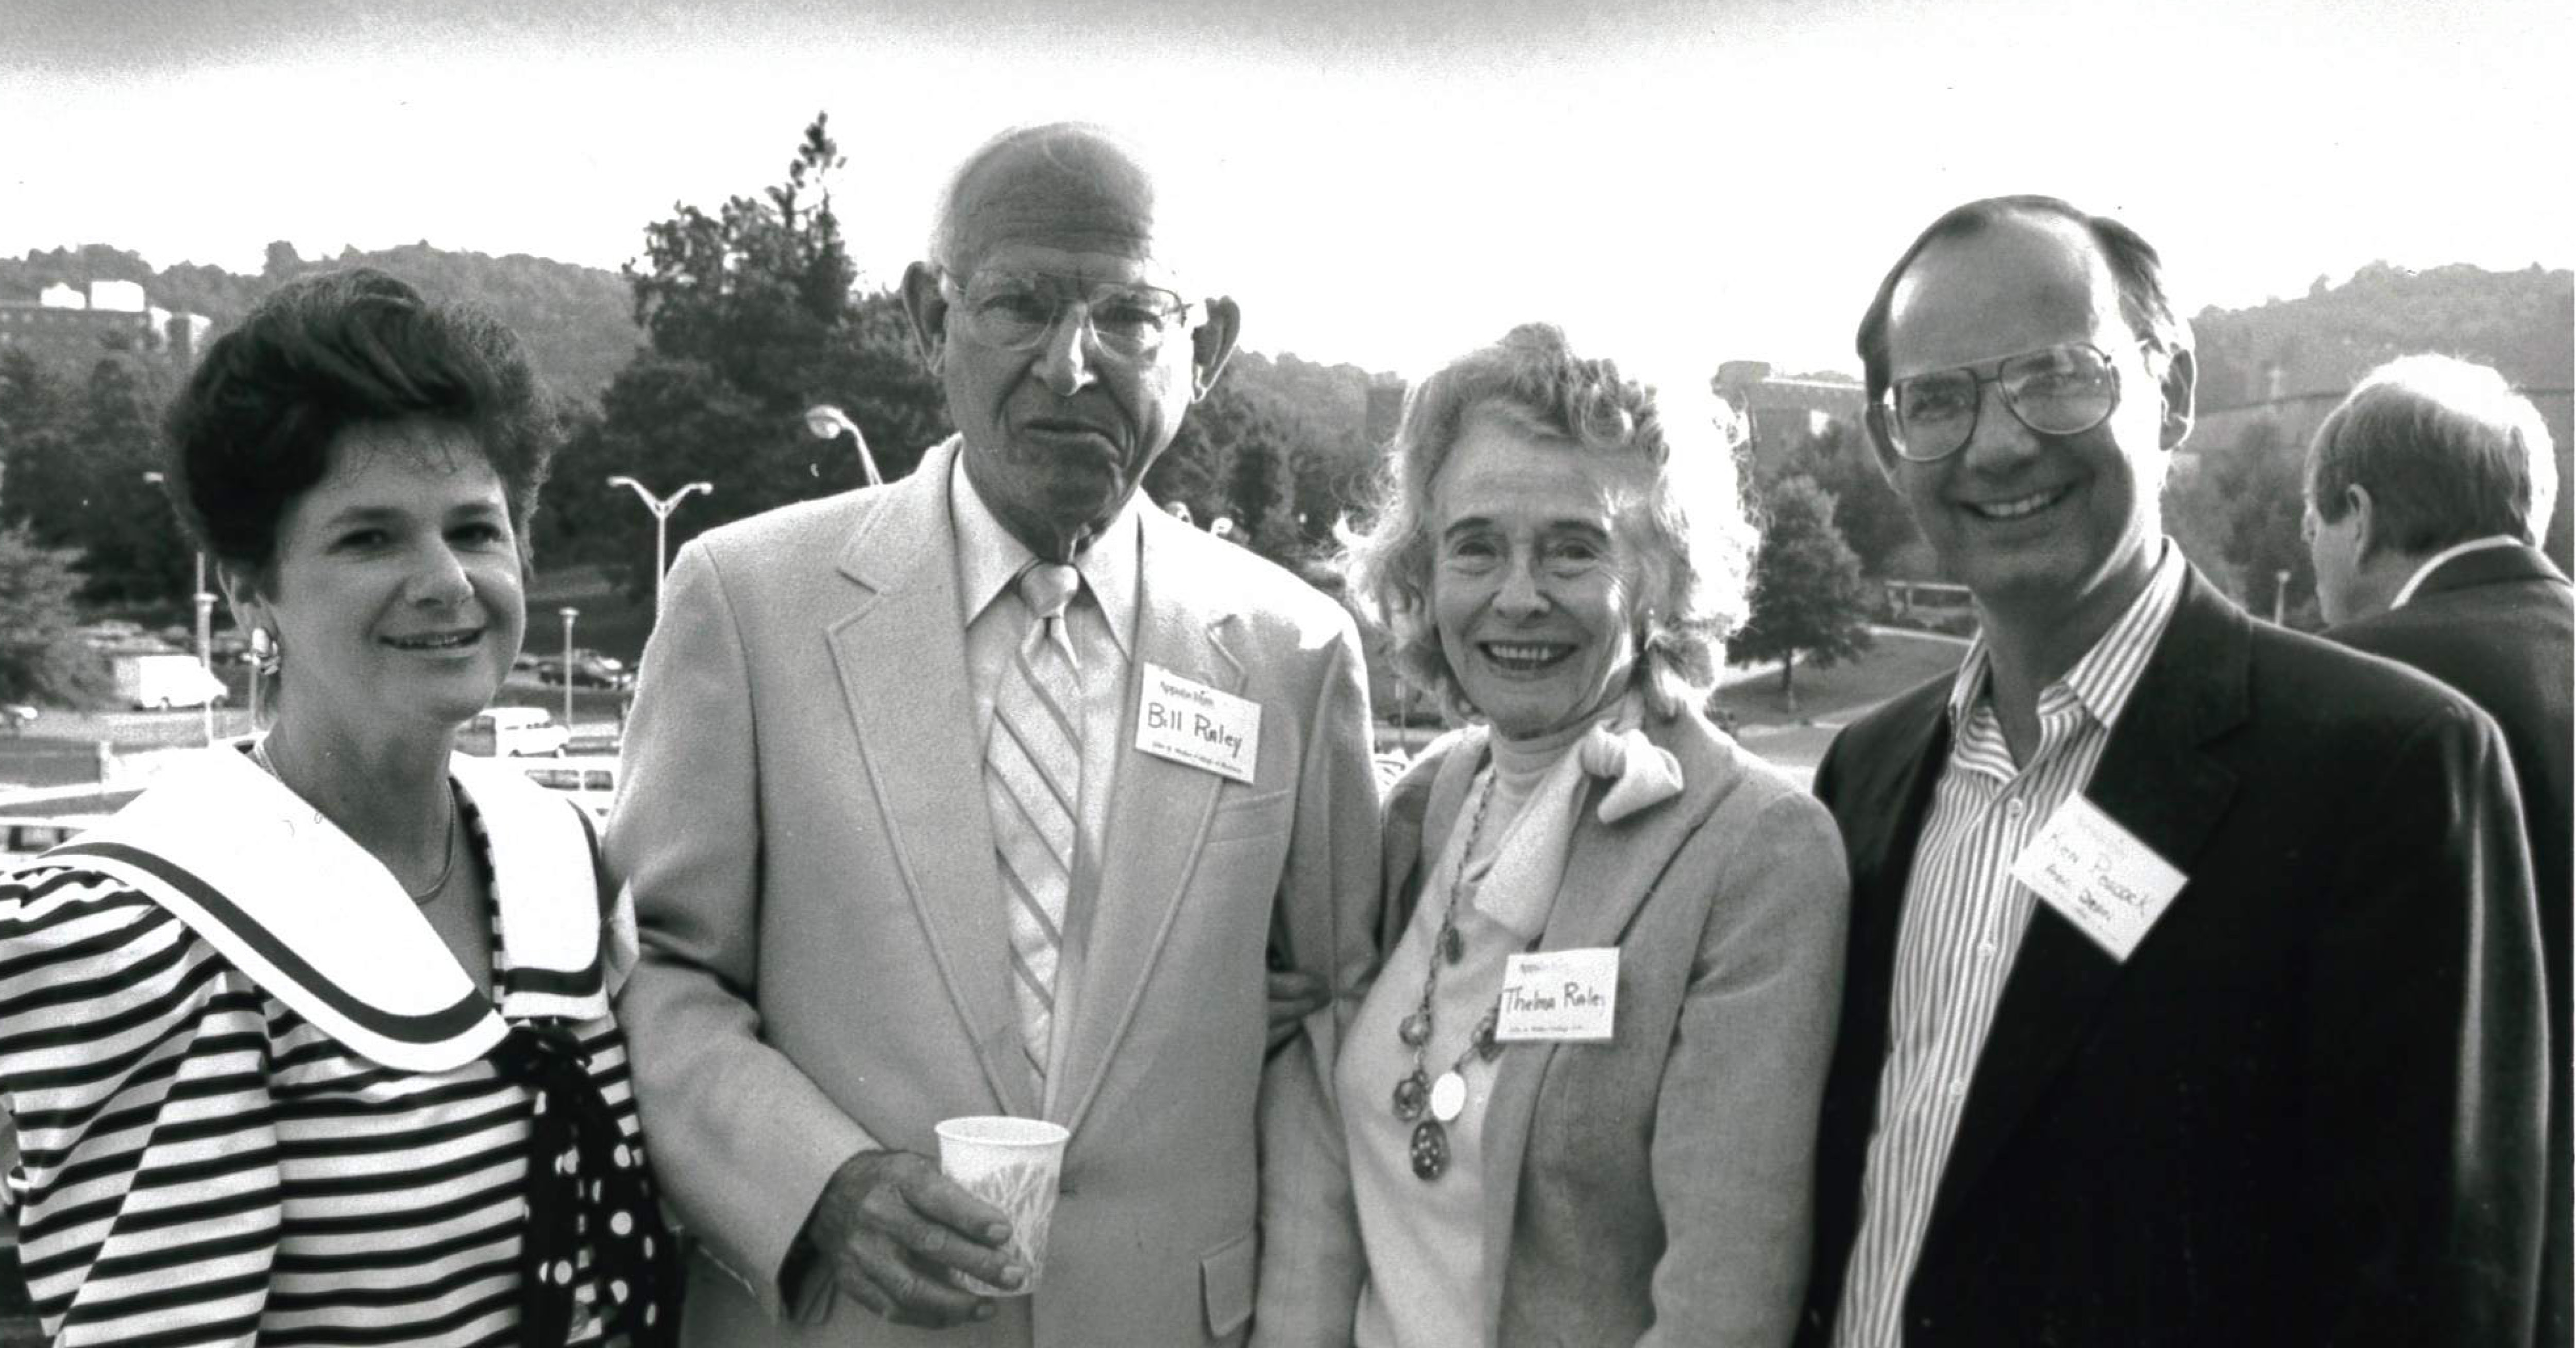 Bill and Thelma Raley (center), friends of the Walker College, stand between Associate Dean Ken Peacock and his wife, Rosanne.